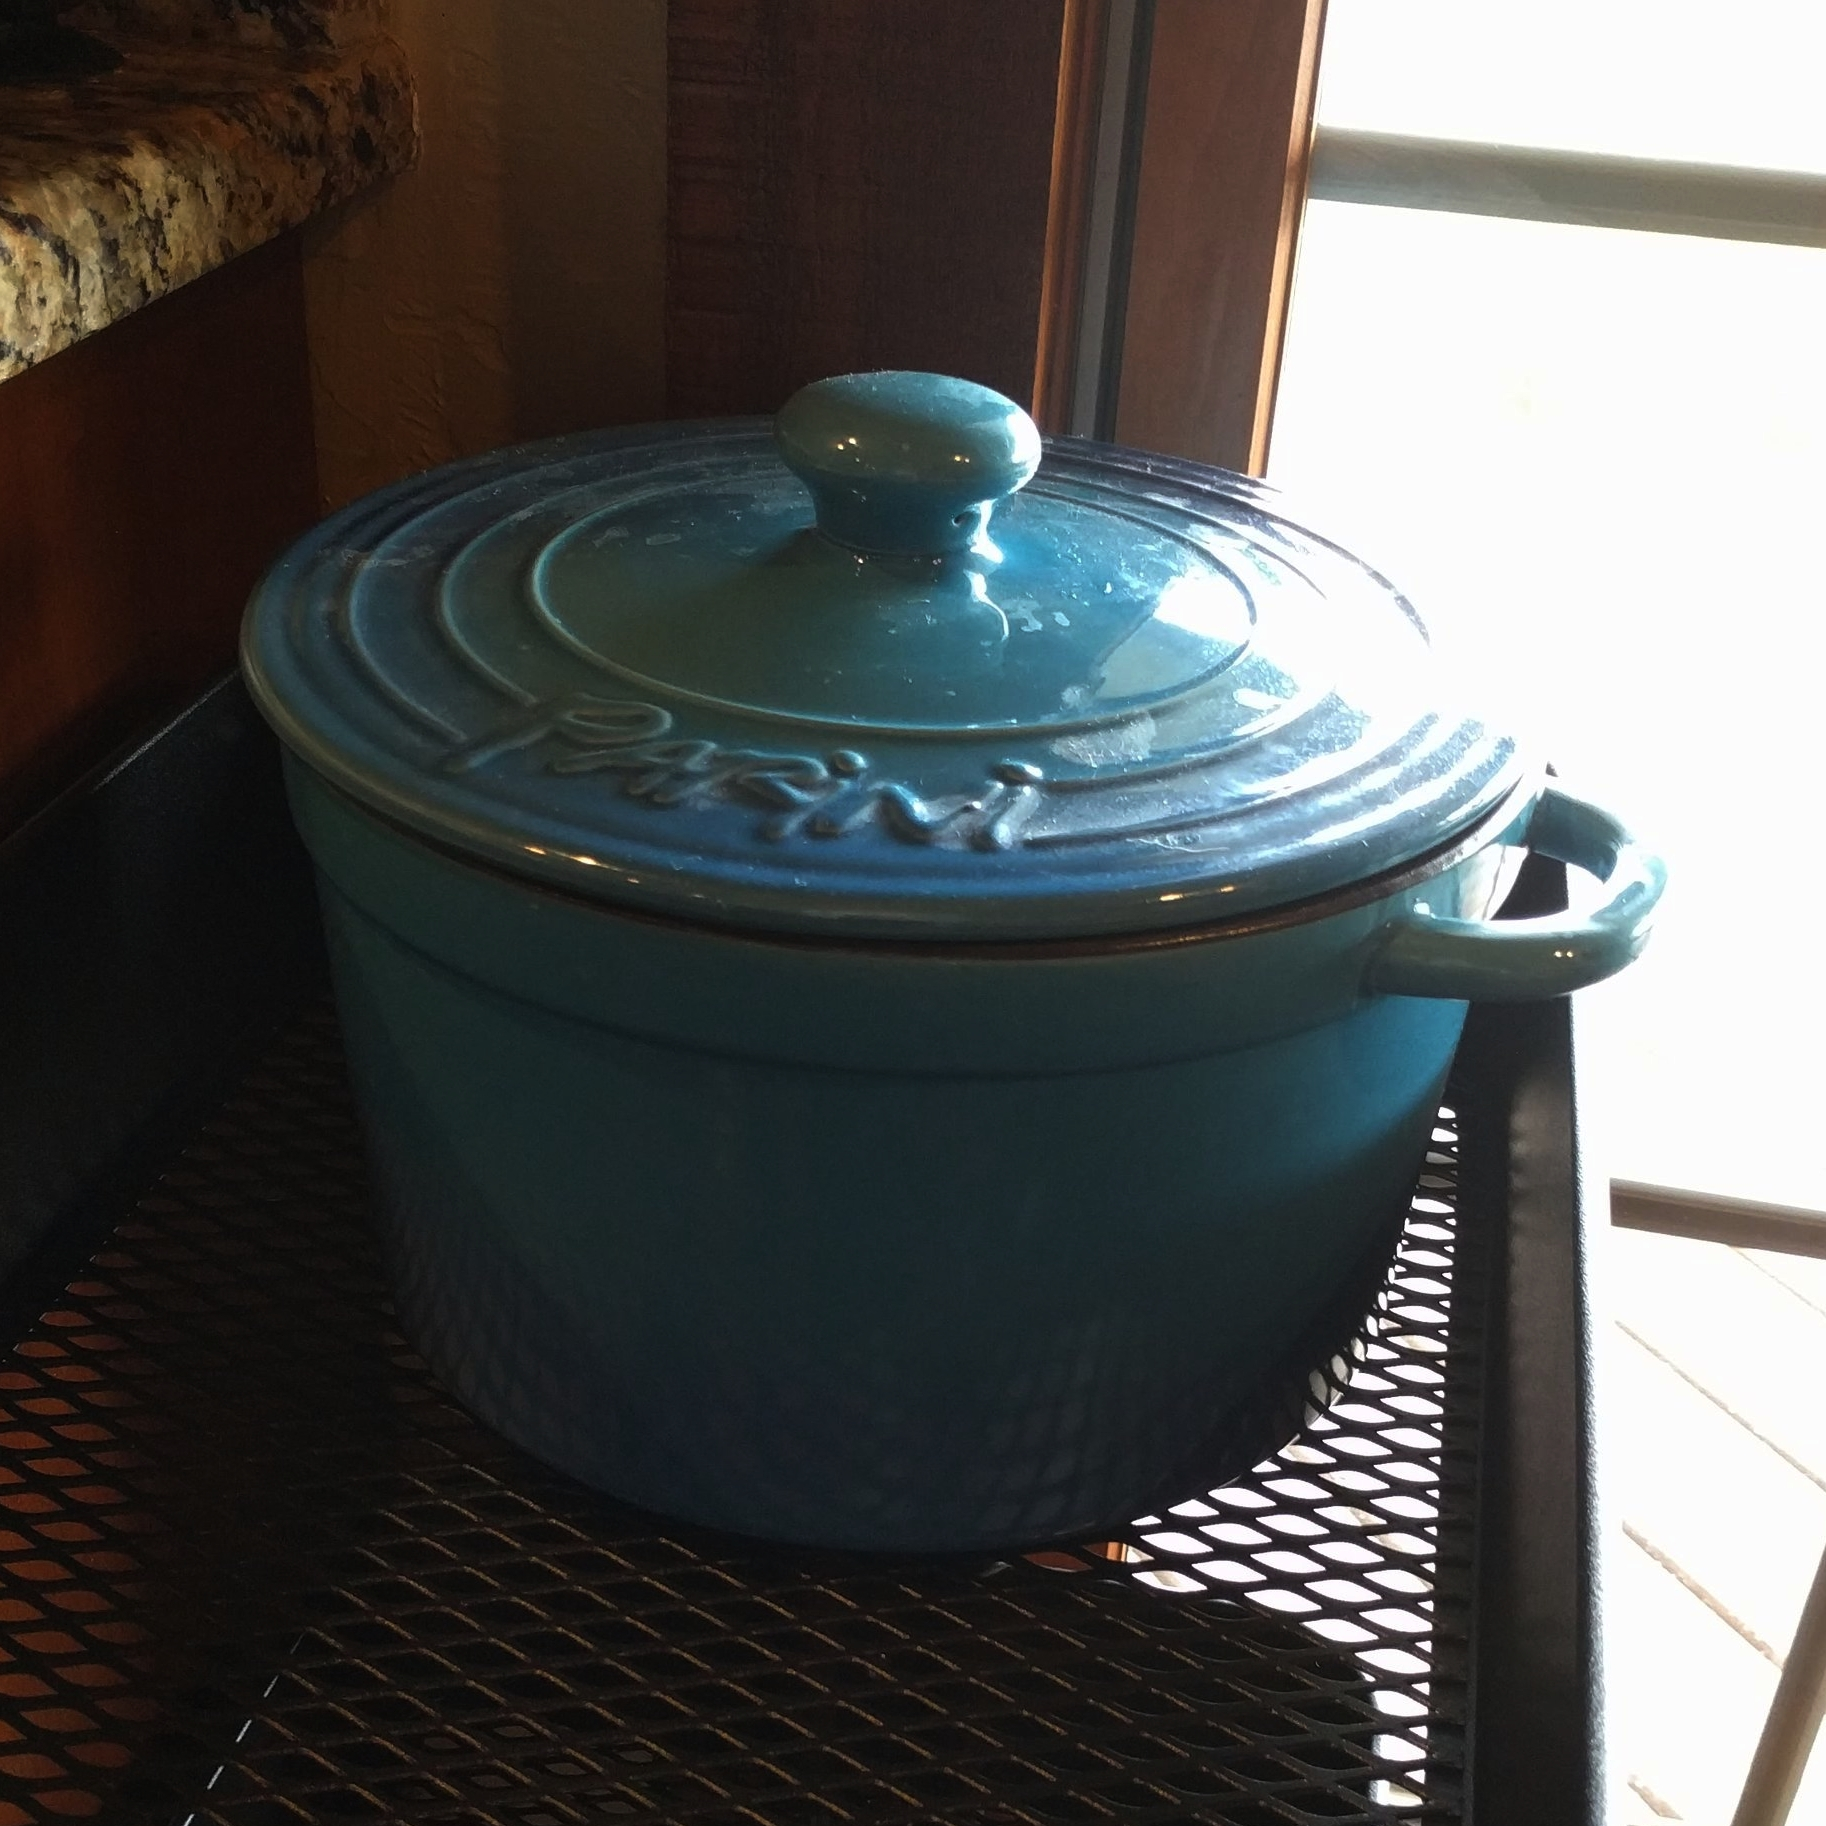 My aunt won my pot for me at a bingo tournament! Free wheat seed sprouter/dutch oven.